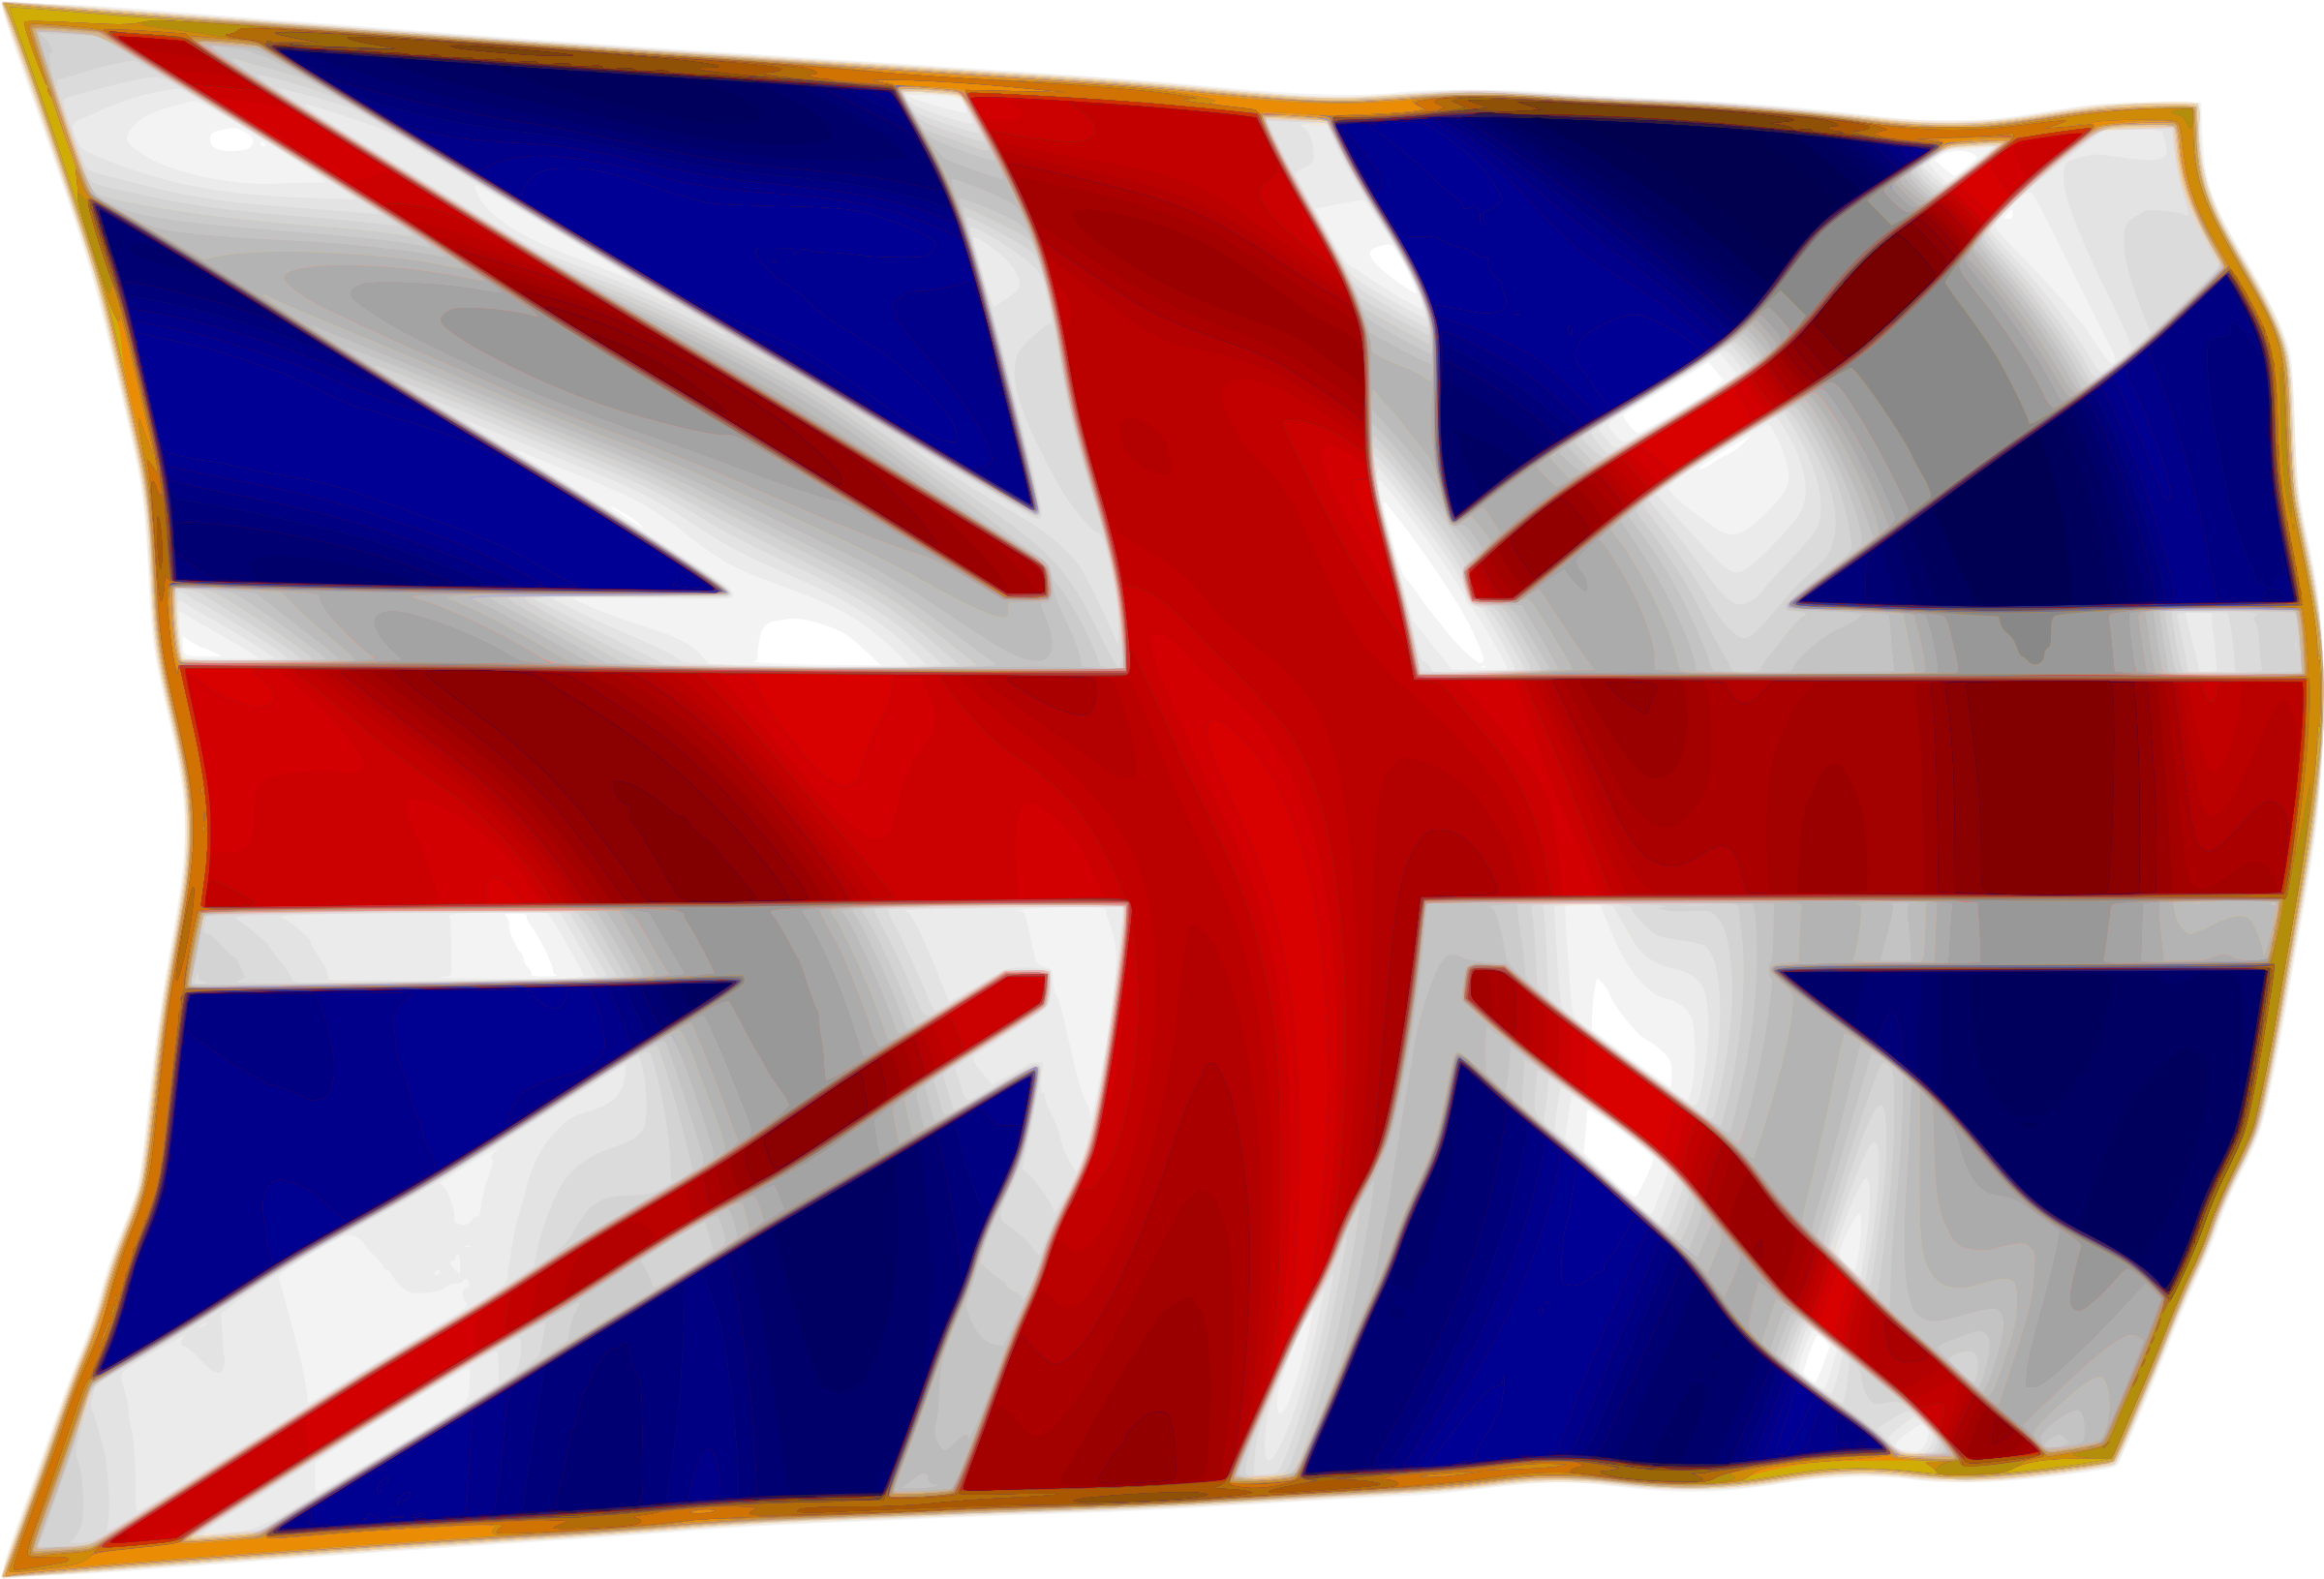 Yearbook clipart transparent background. Union flag fluttering in